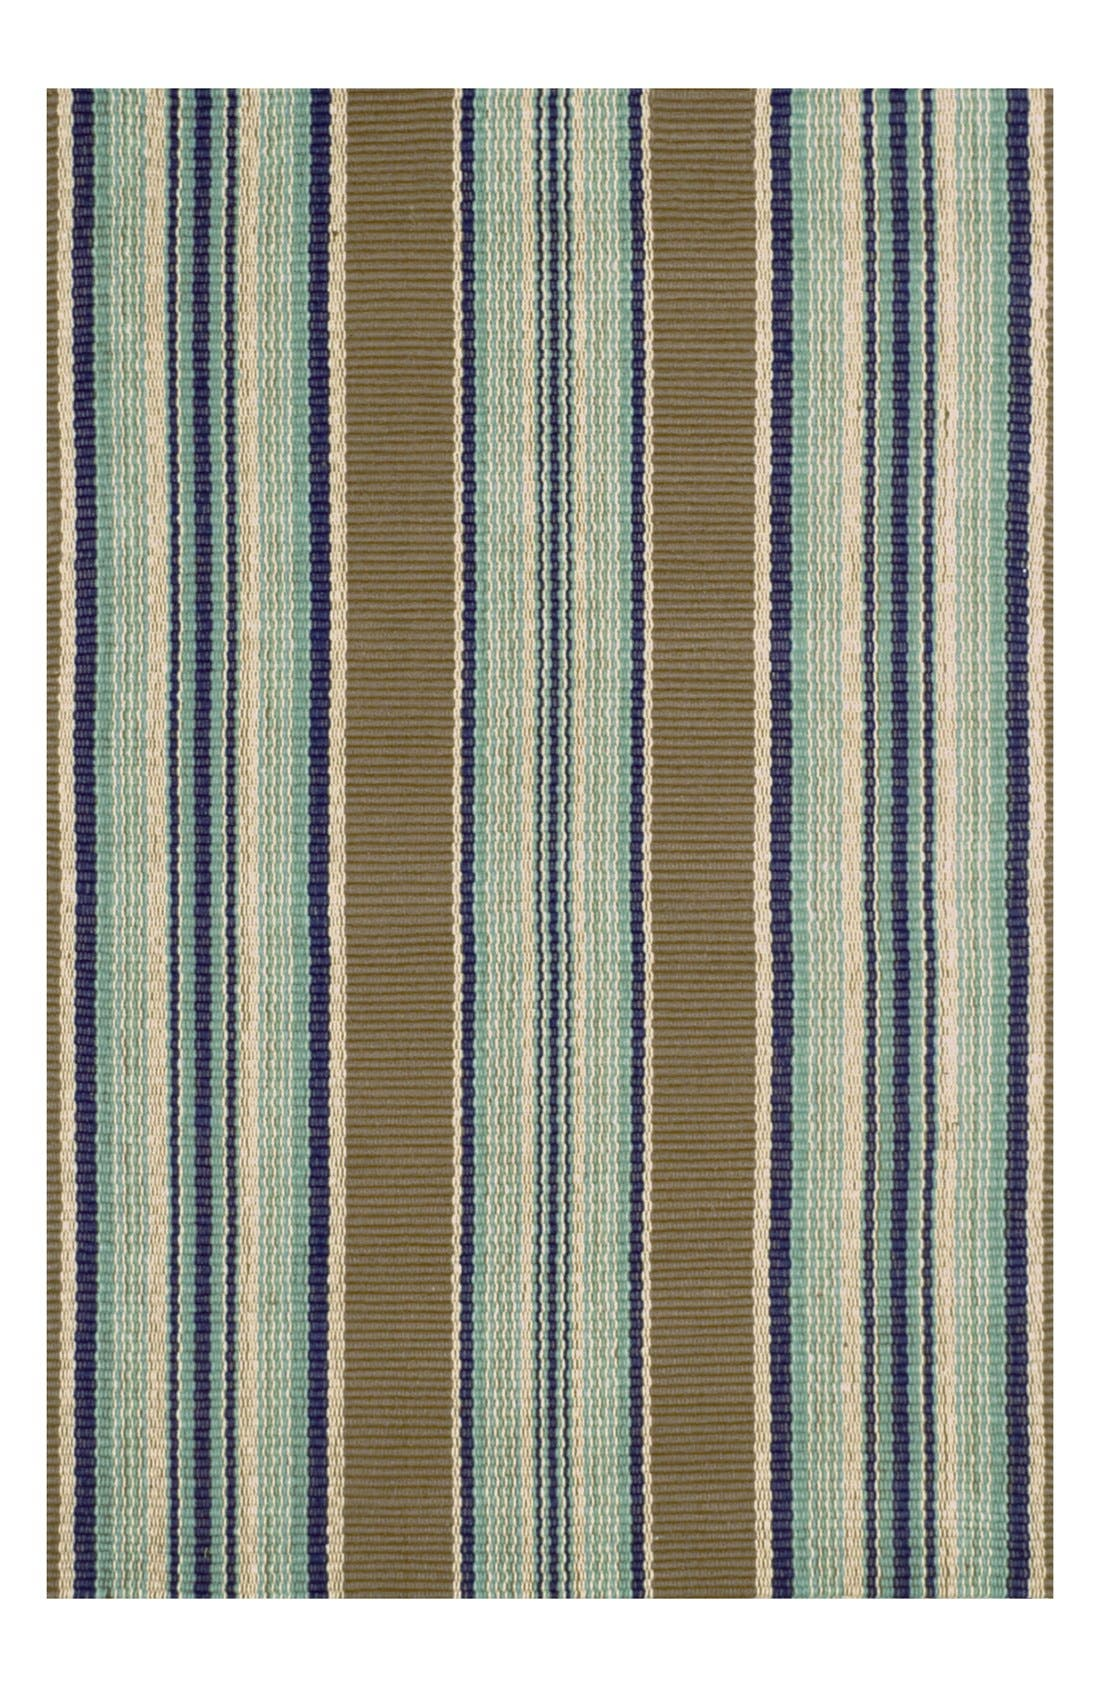 'Blue Heron' Stripe Cotton Rug.,                             Main thumbnail 1, color,                             Blue/ Multi